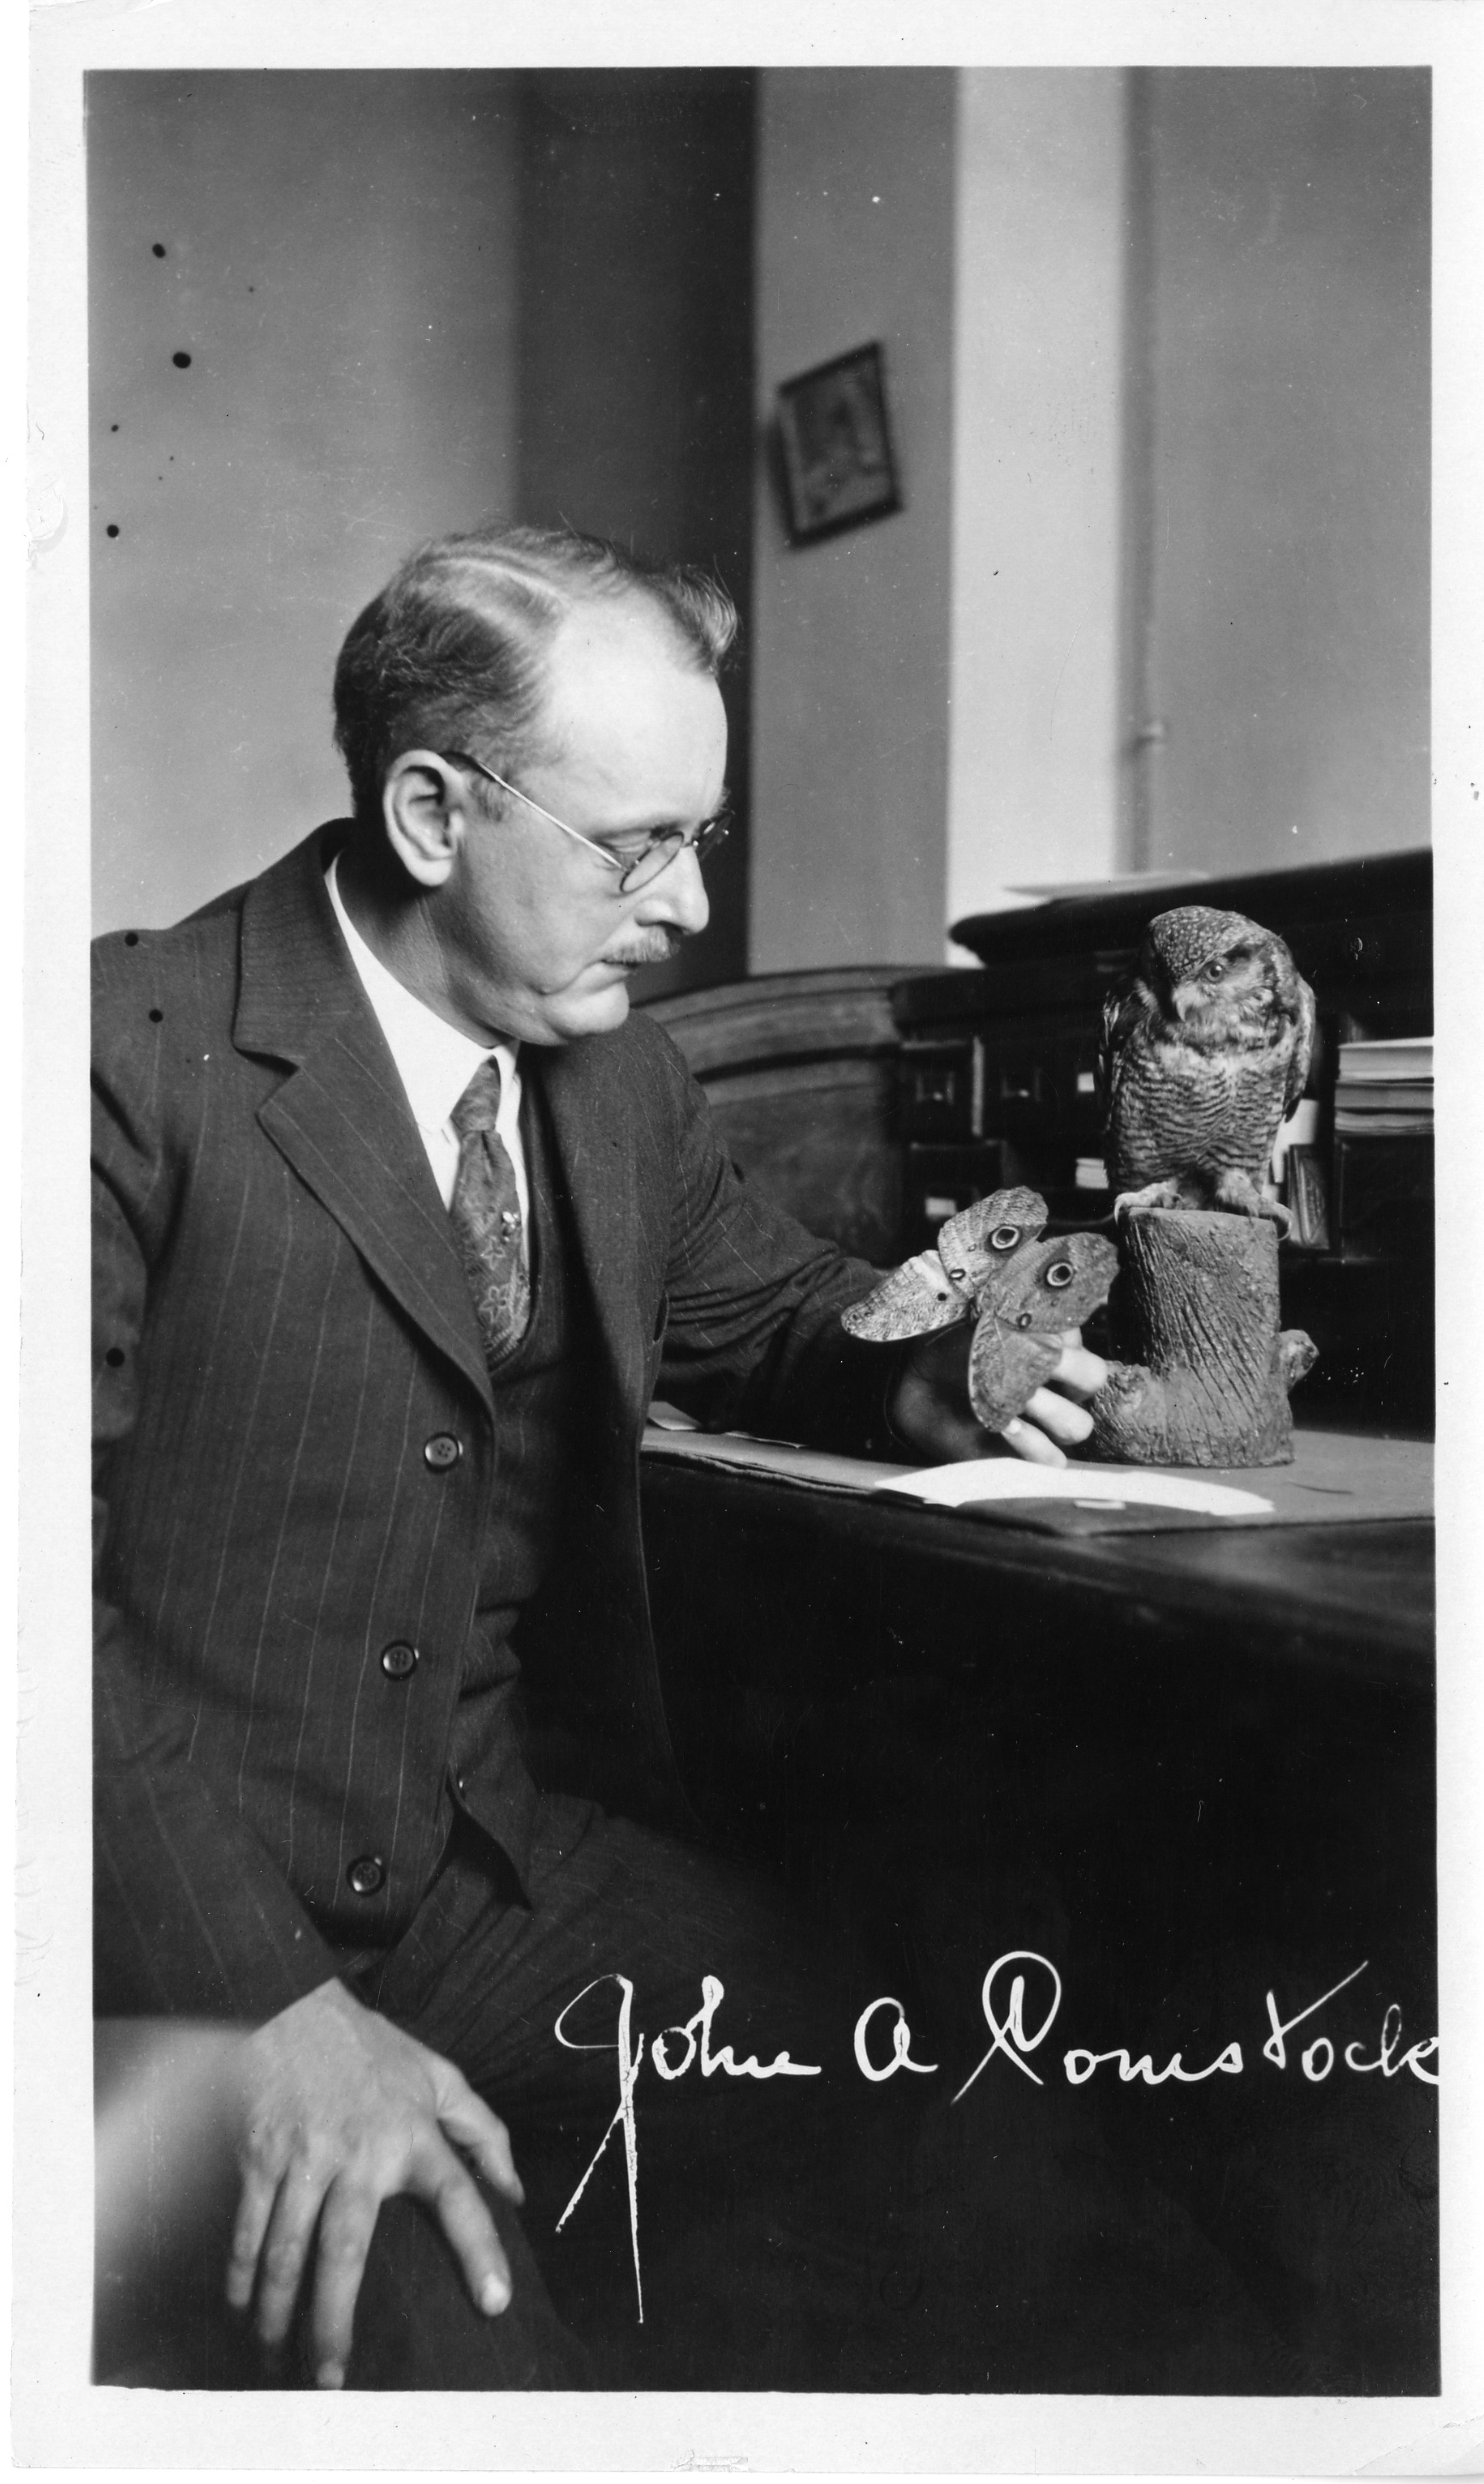 A man in a suit holds a butterfly and a figure of an owl perched on a stump is near him on the desk.